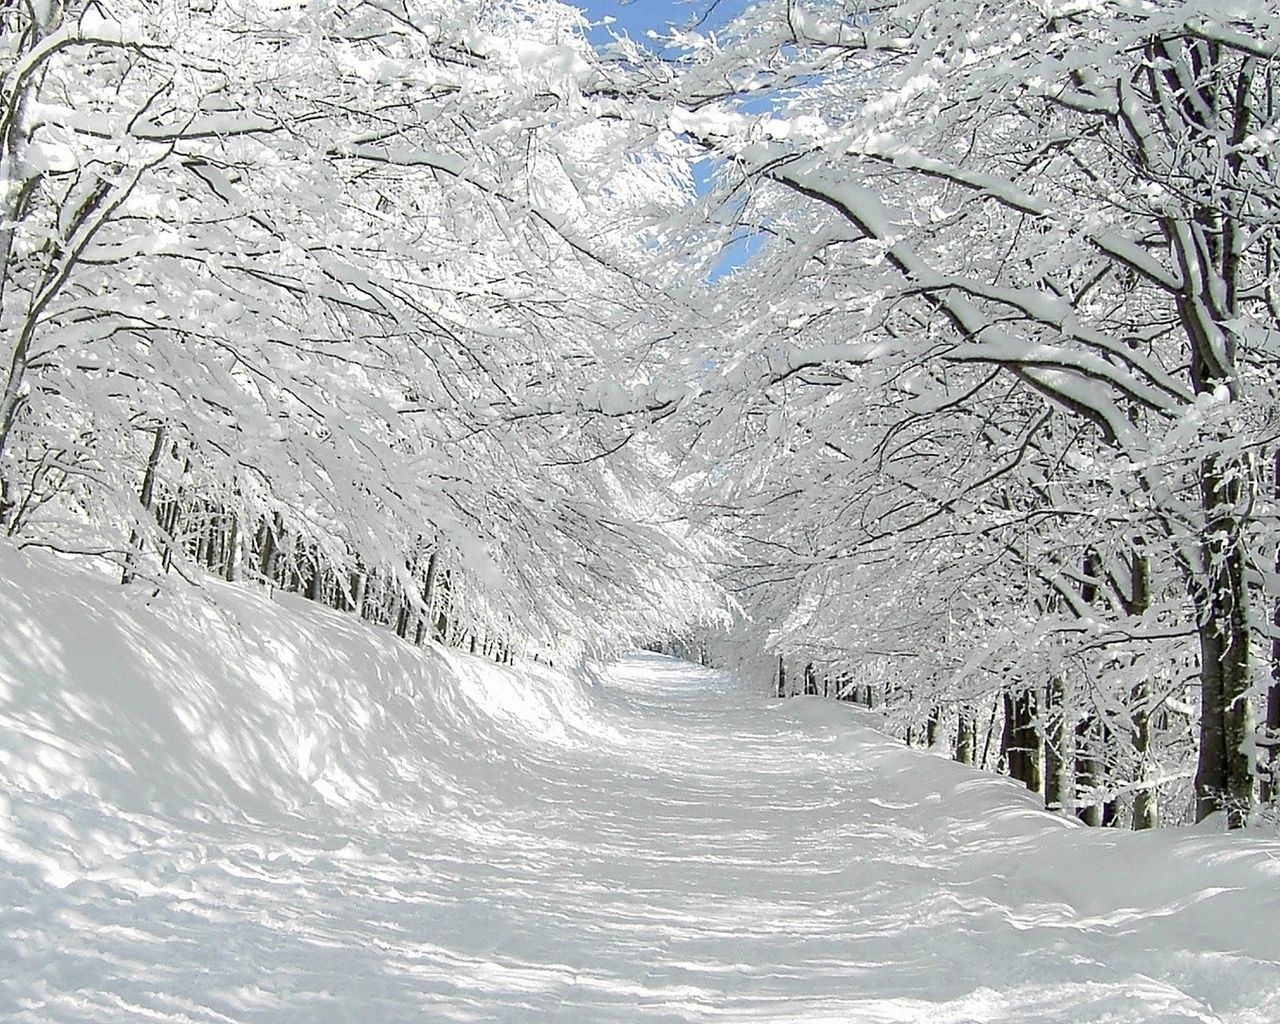 43045 download wallpaper Landscape, Winter screensavers and pictures for free